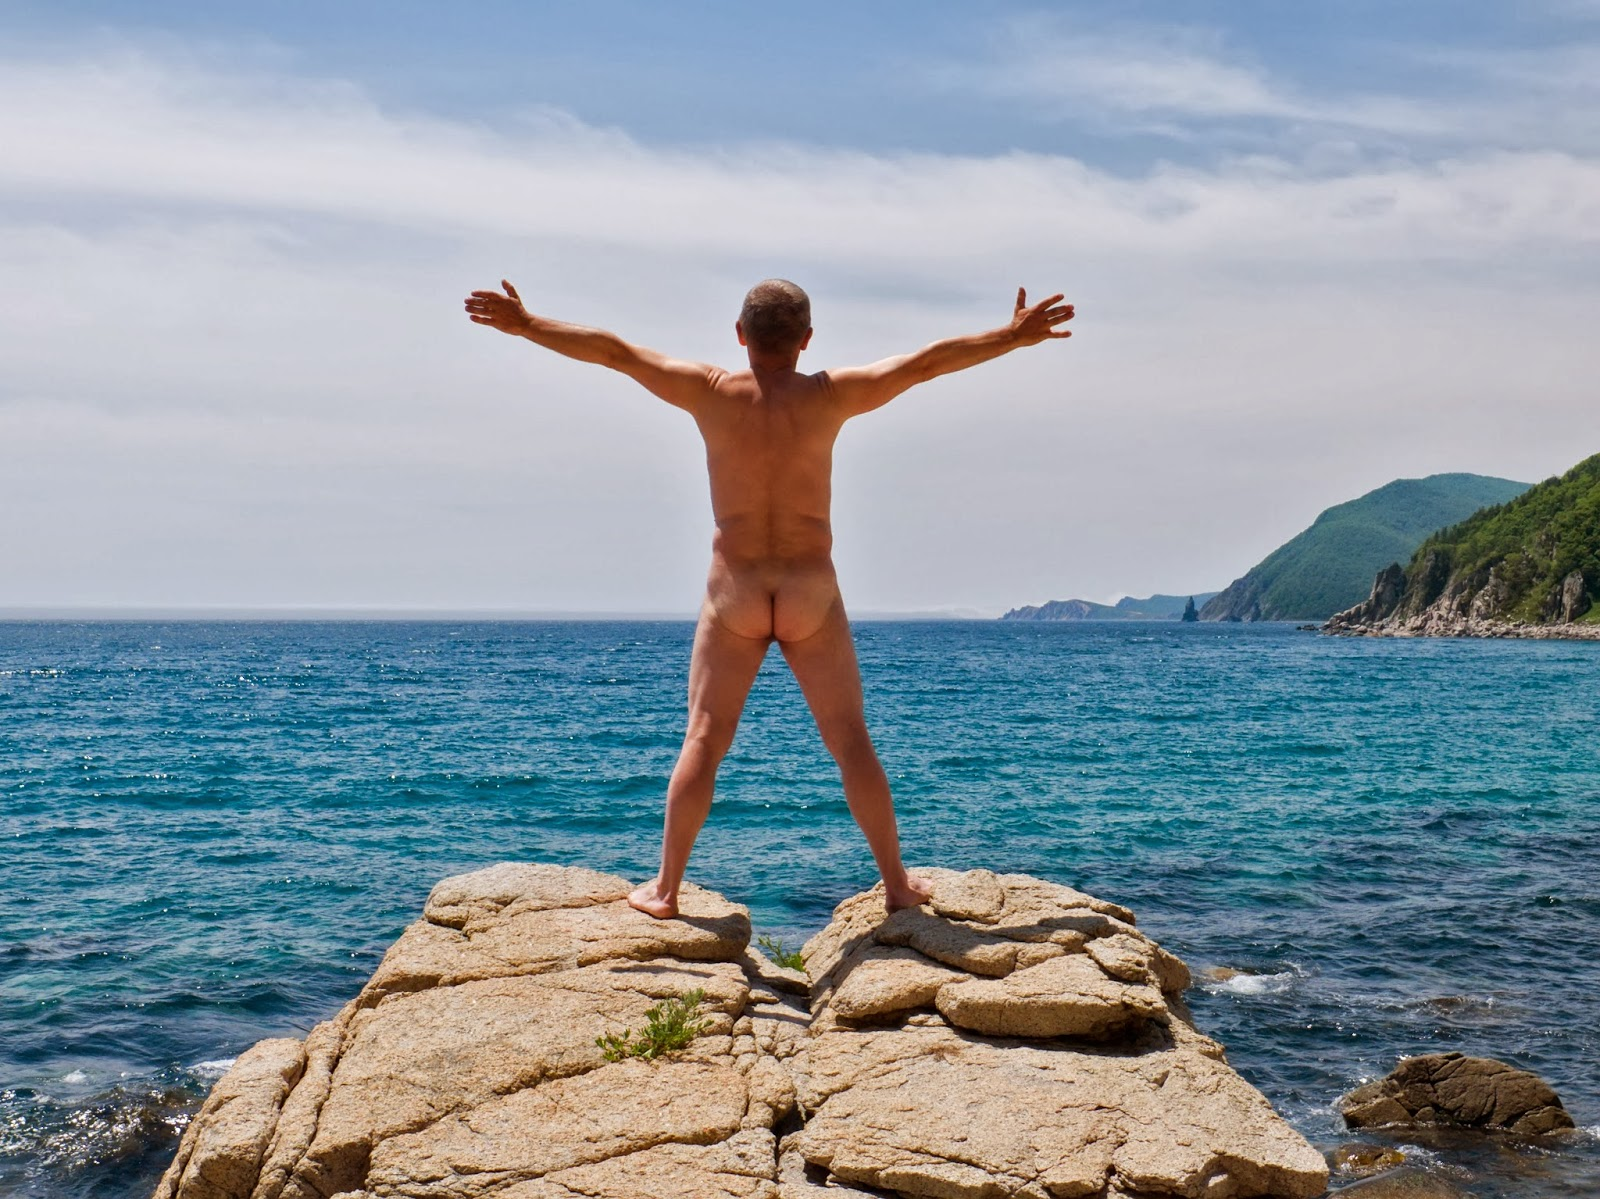 The angles nudists photos spend